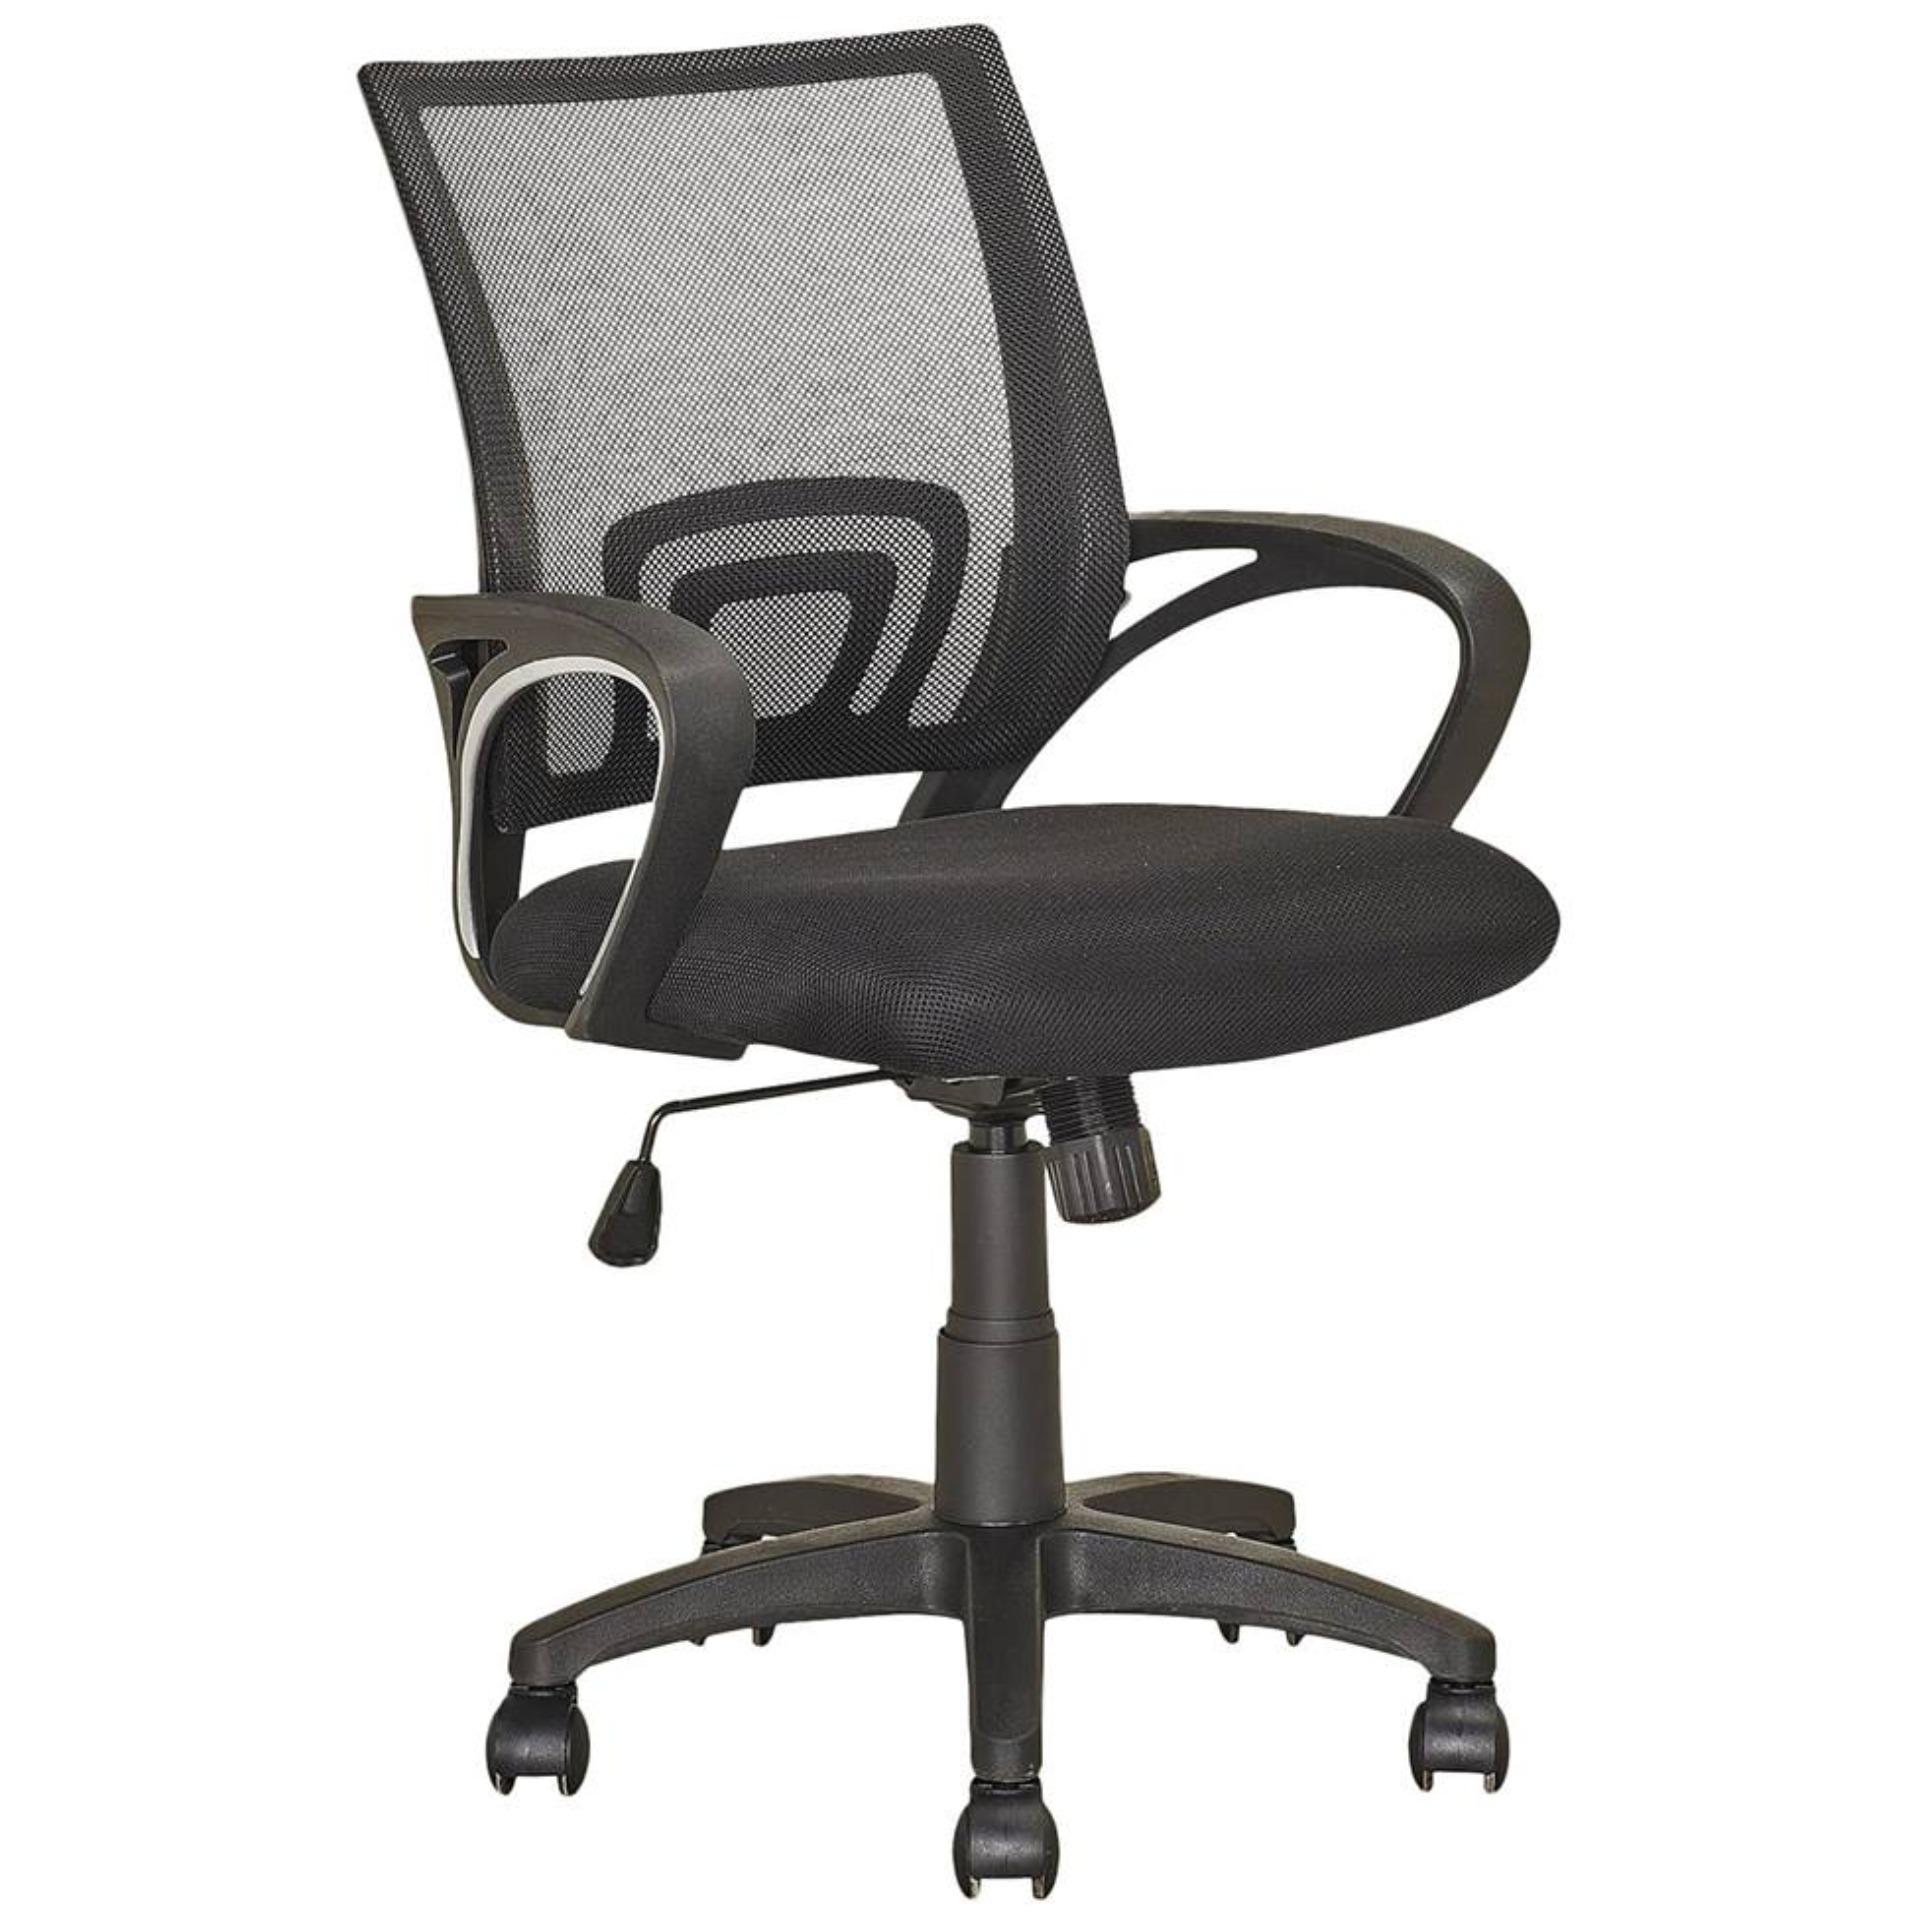 Office Chair Revolving Mesh Back Buy Online At Best Prices In Pakistan Daraz Pk